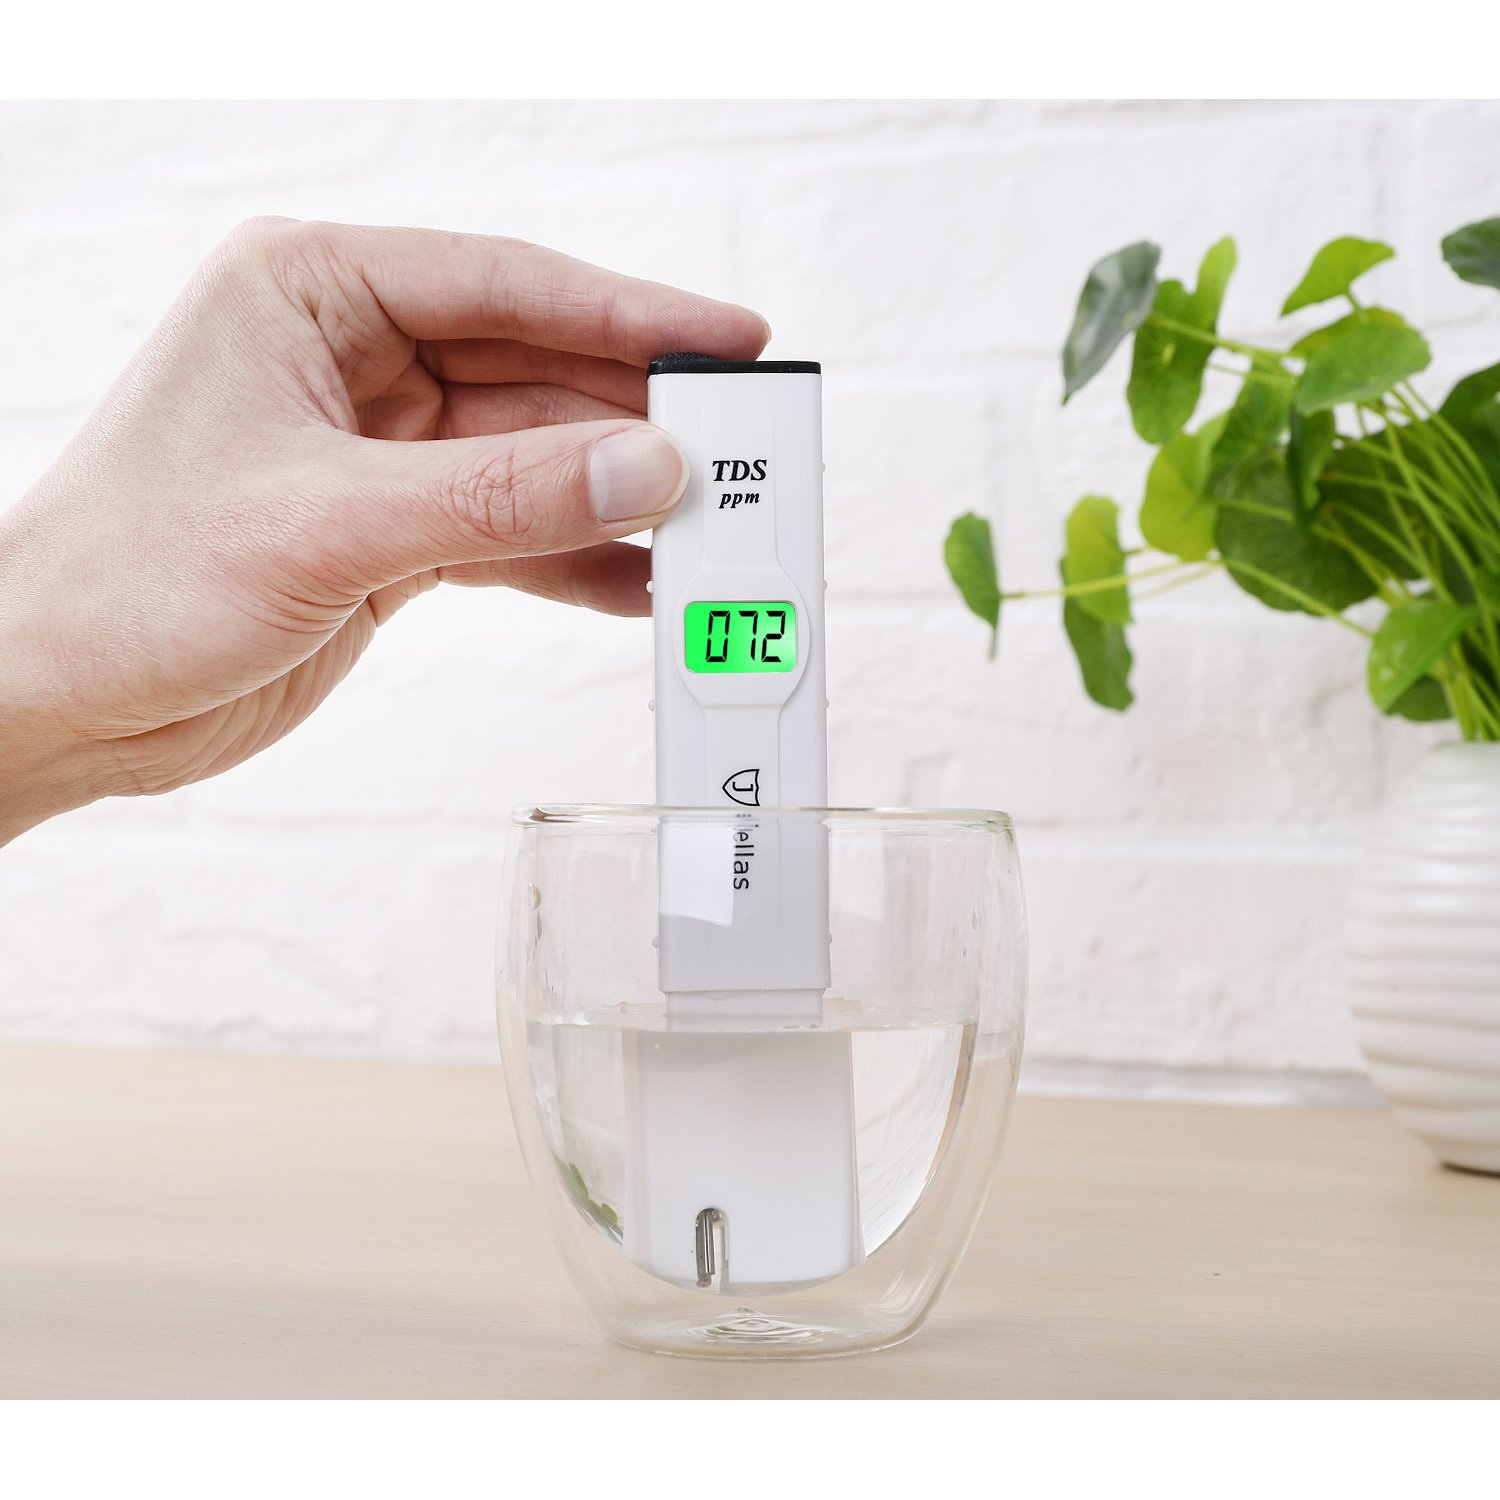 Jellas TDS Meter, TDS-91182 Pocket Size TDS/PPM Water Quality Tester with 4-Digit Backlit LCD Display for Household Drinking Water, Swimming Pools, Aquariums, Hydroponics and More. by Jellas (Image #7)